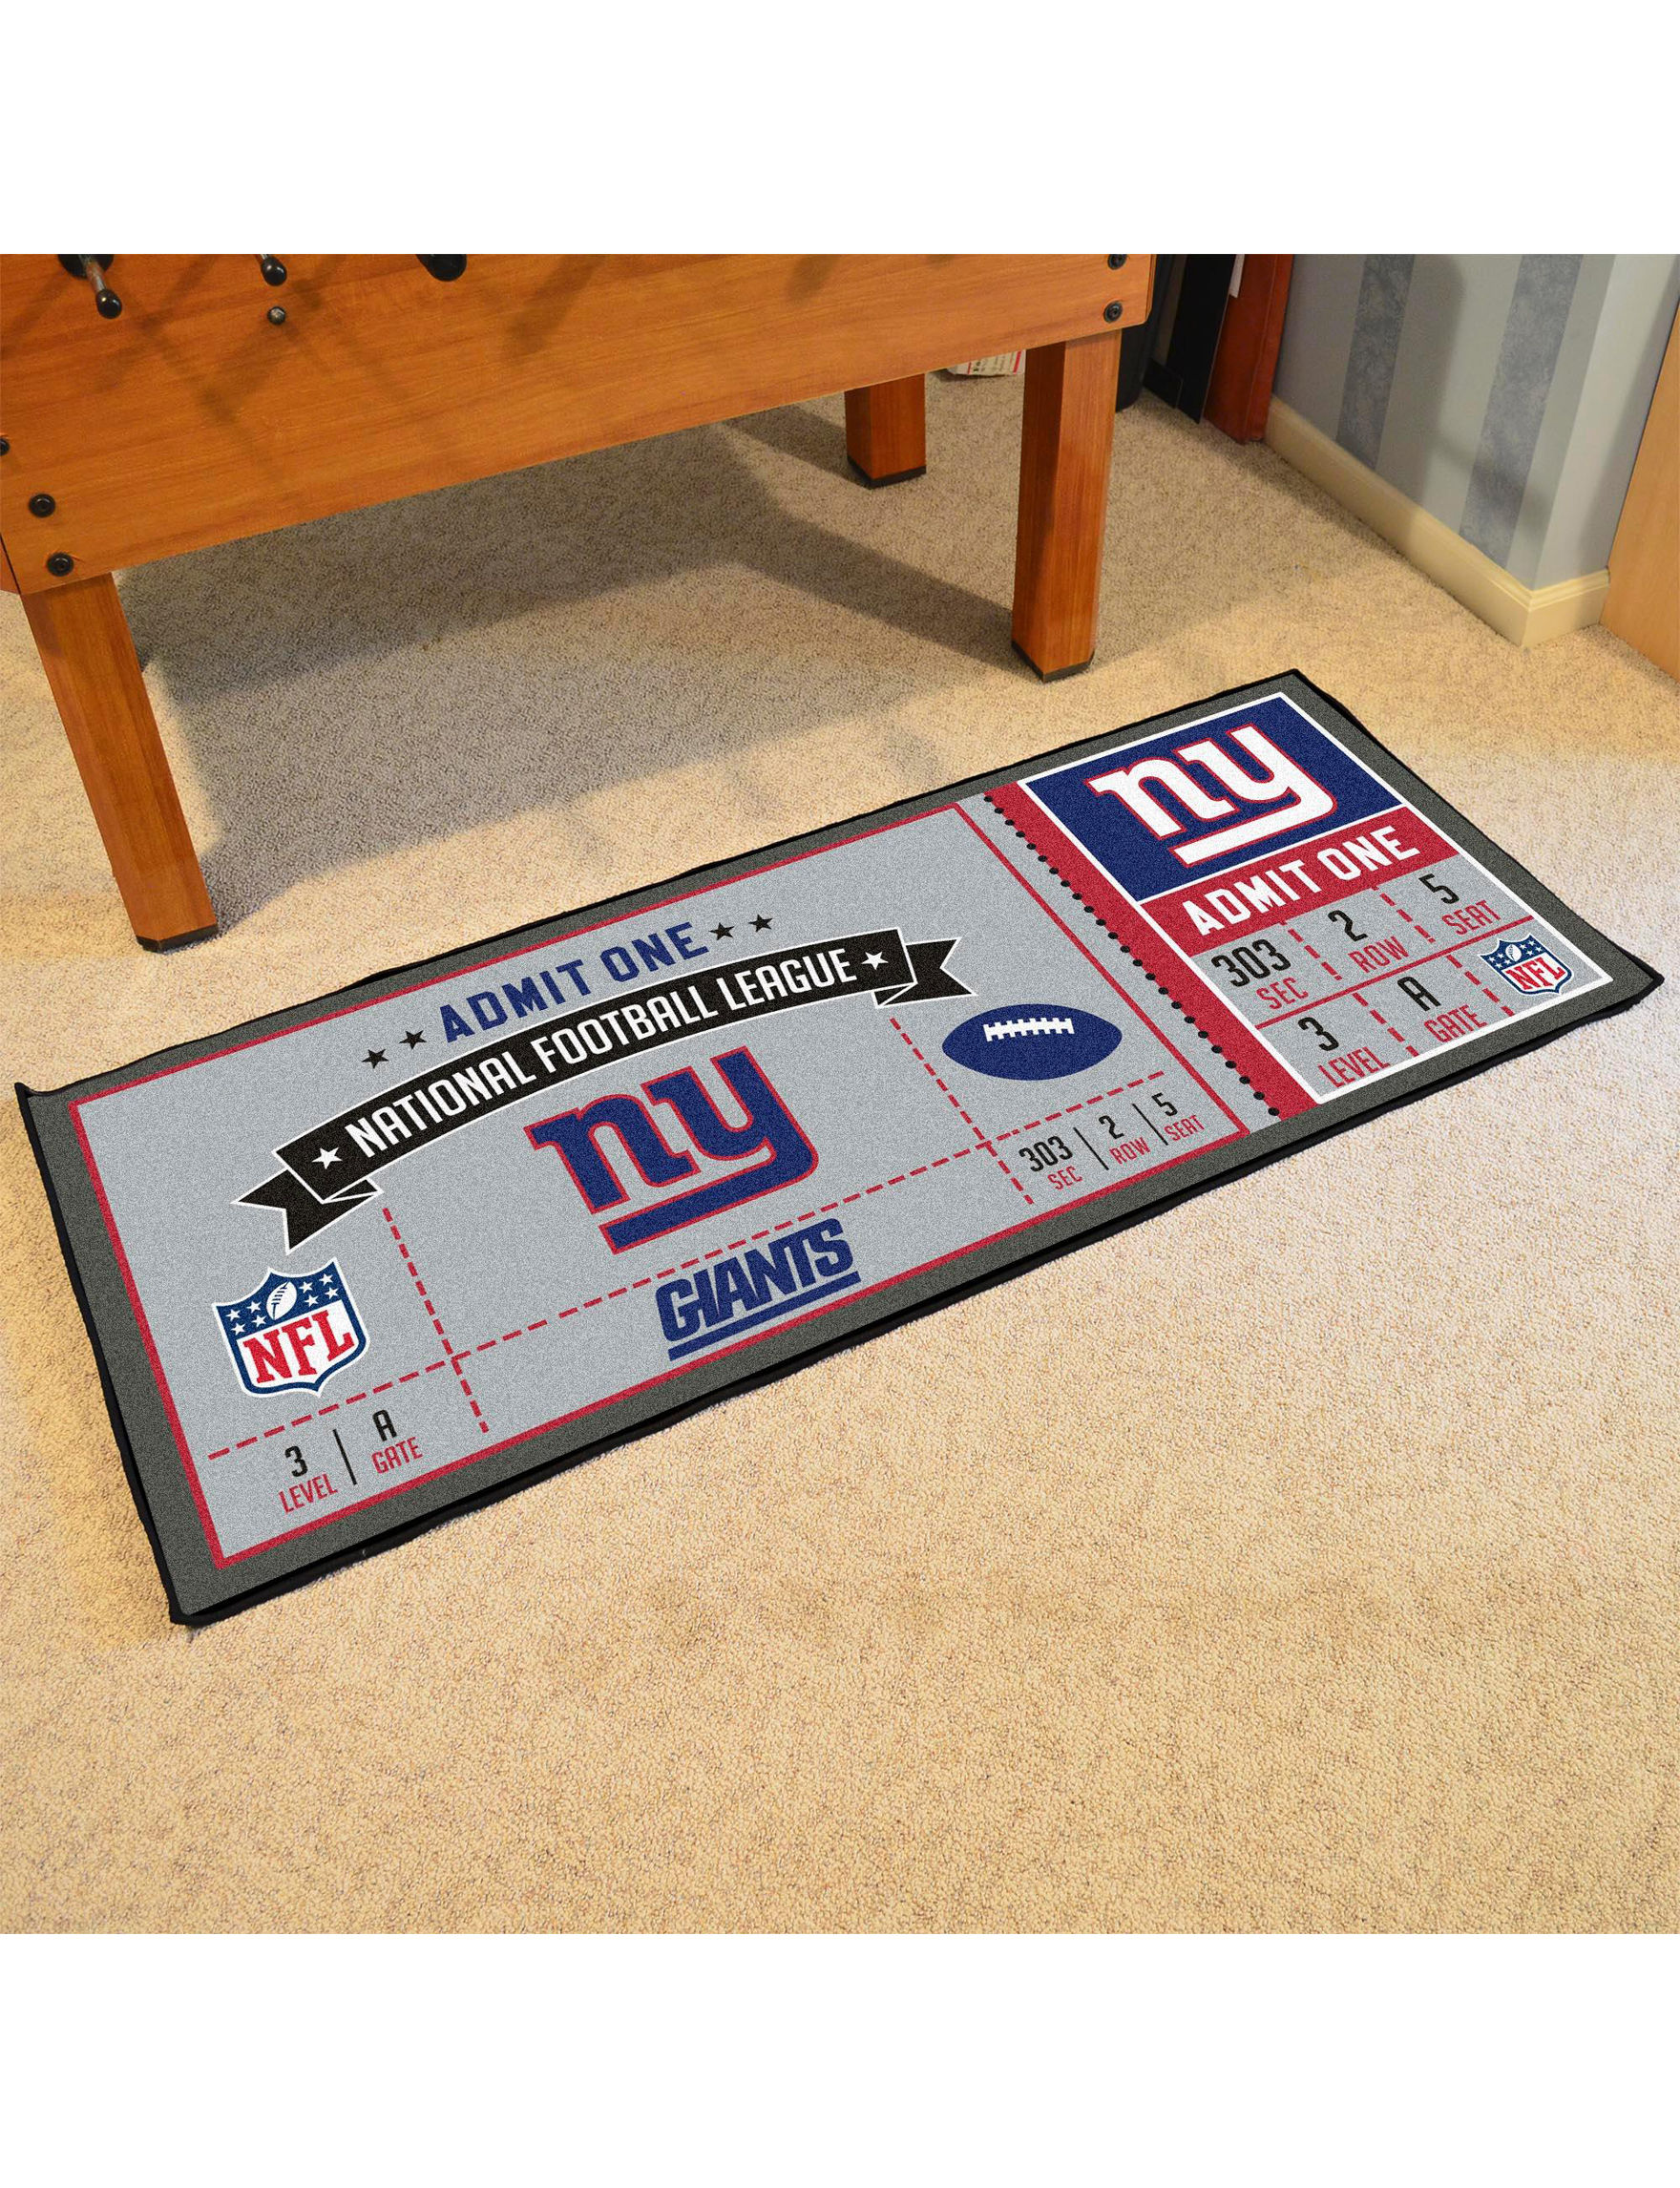 Fanmats Blue / White Runners Rugs